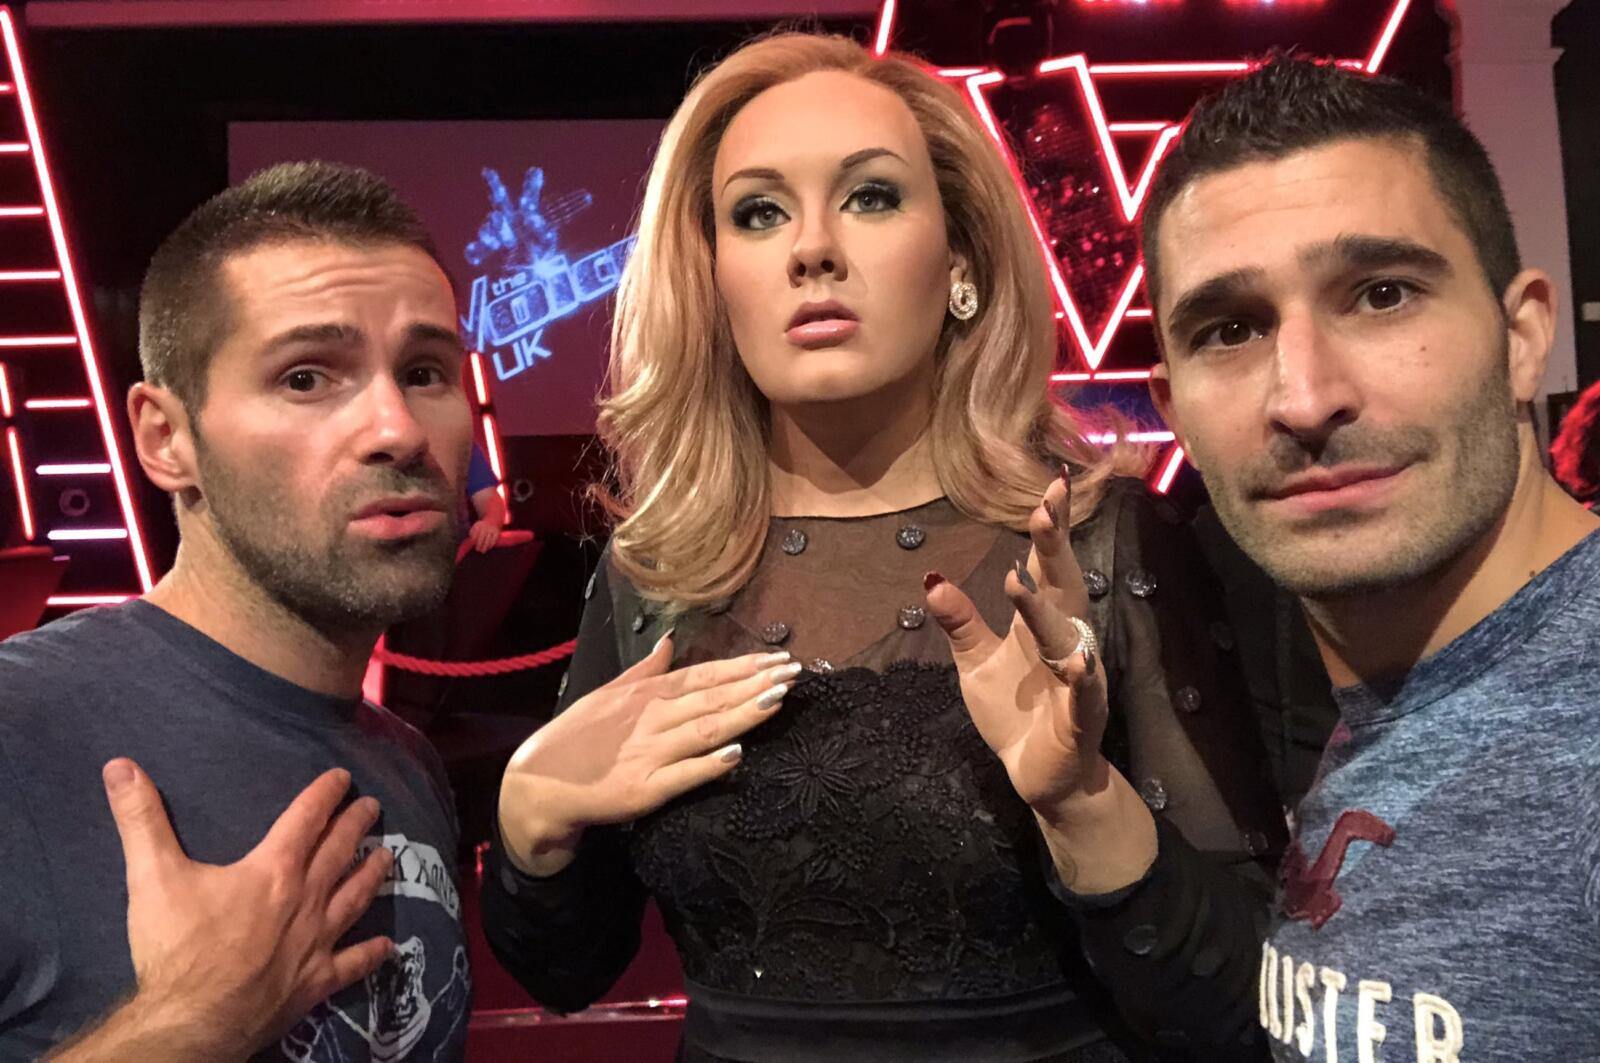 Adele gay icon at Madame Tussauds